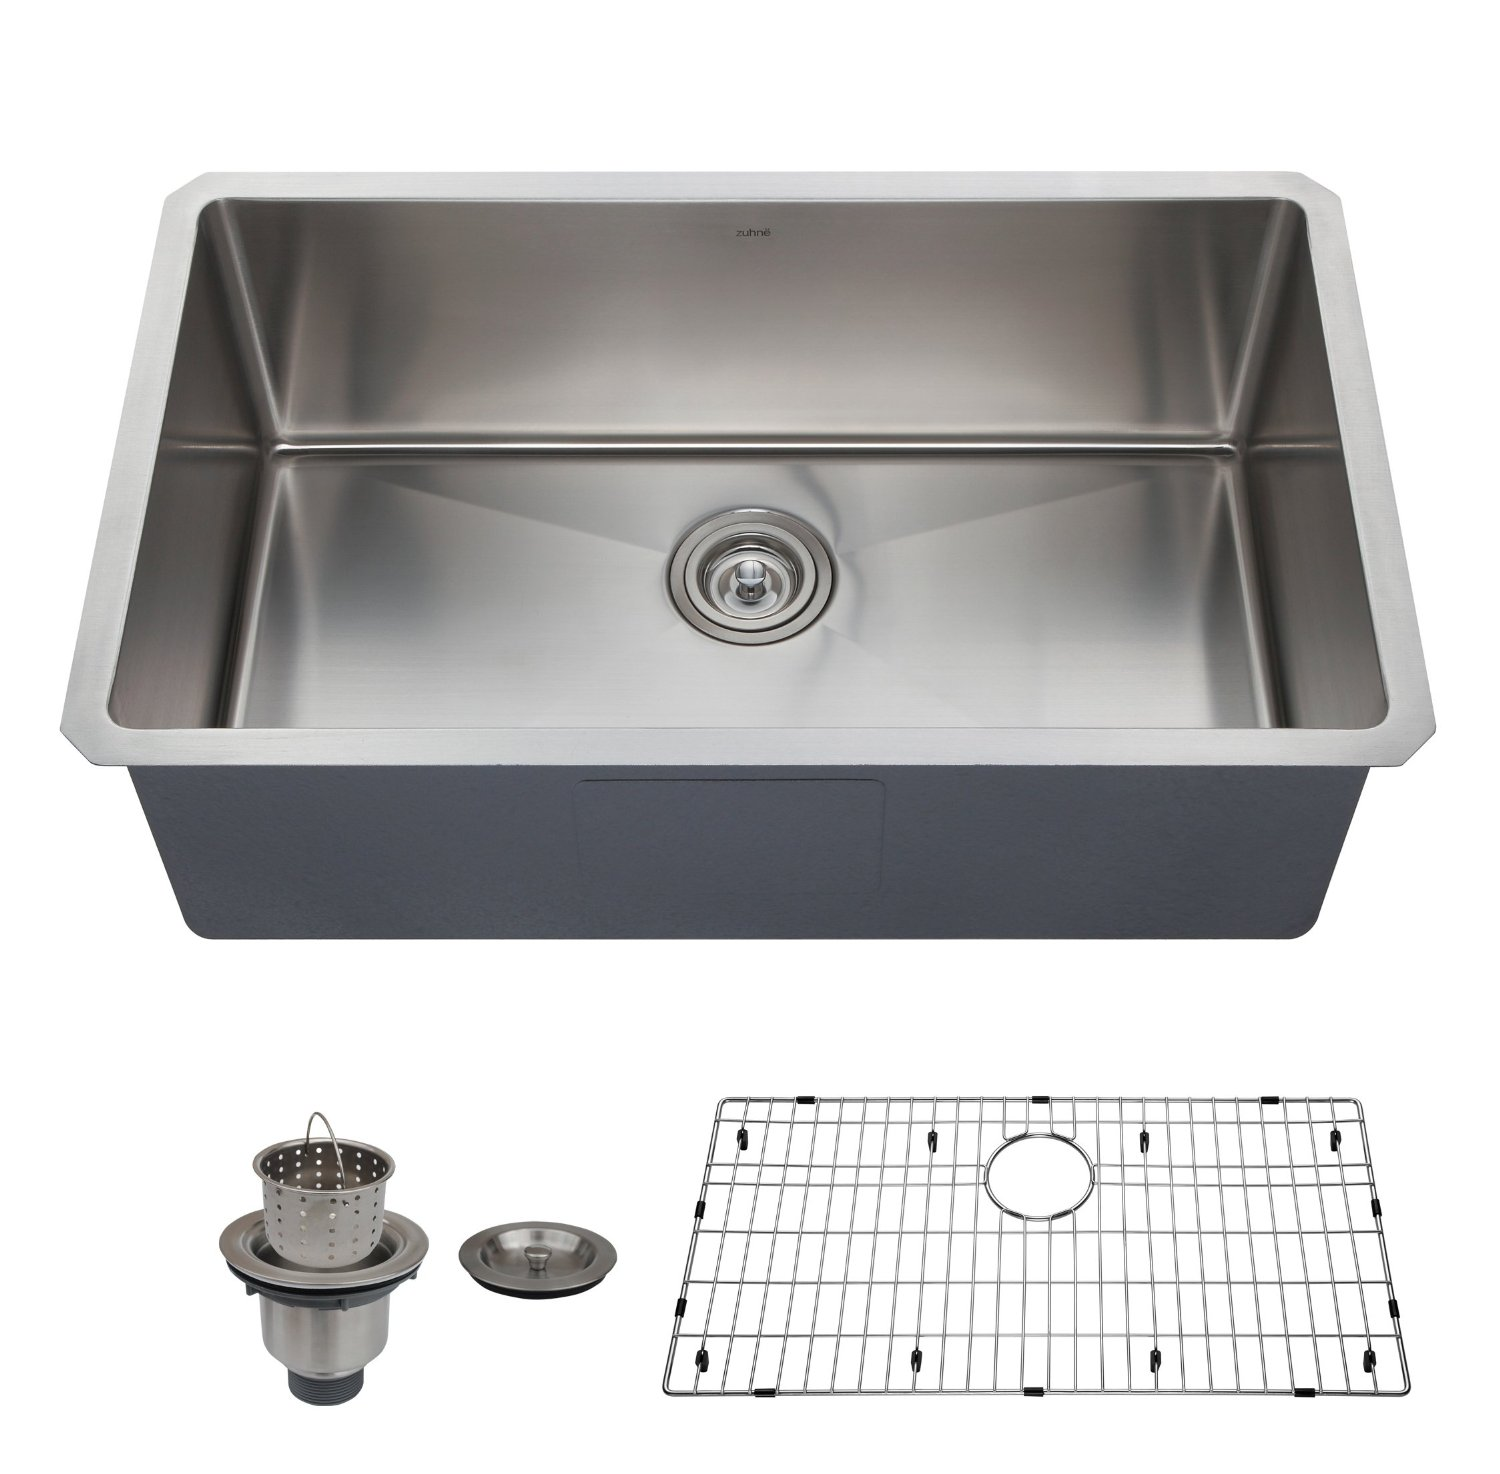 Best Single Bowl Kitchen Sink Reviews: Buying Guide - BKFH